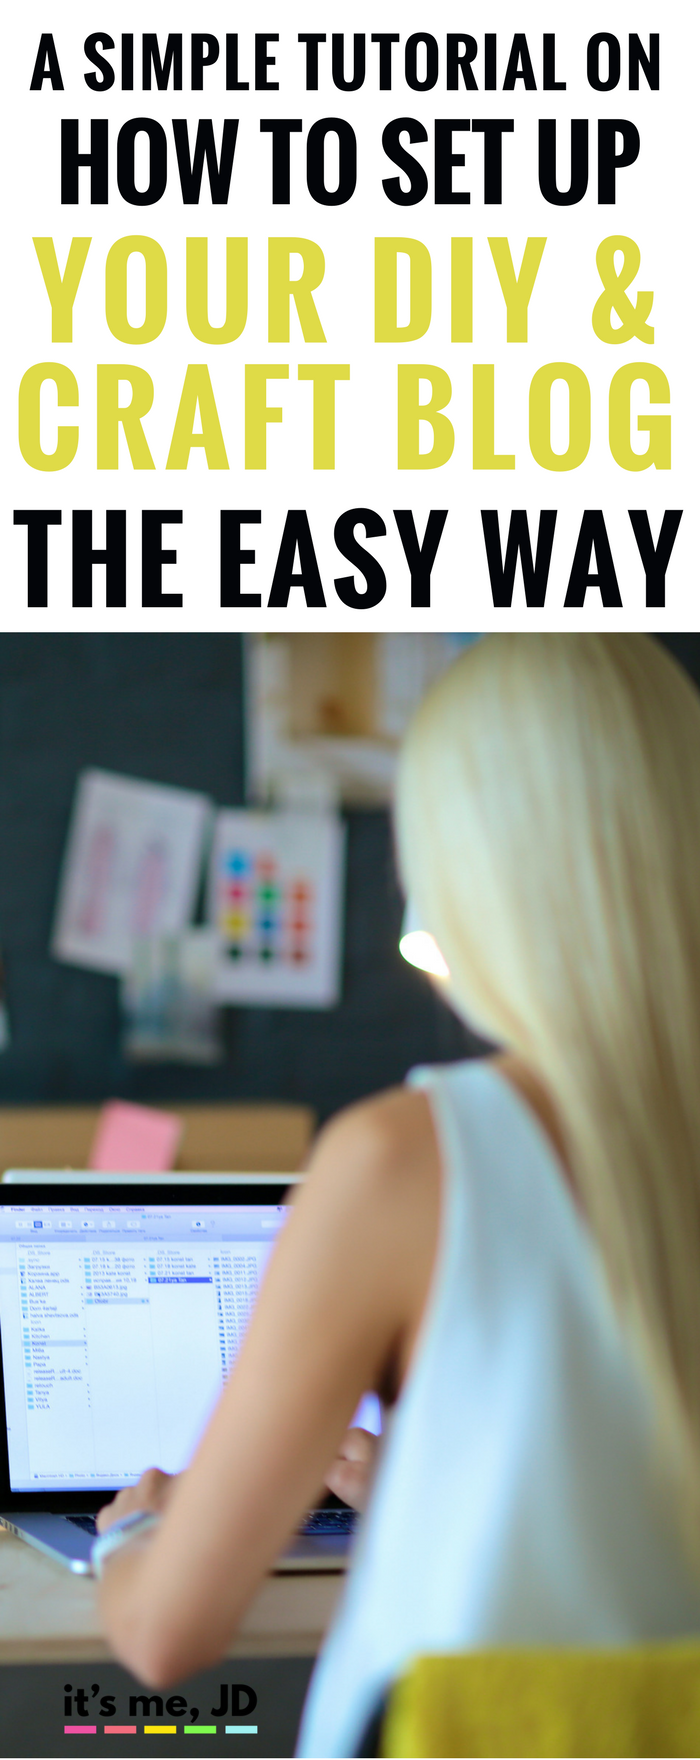 HOW TO SET UP YOUR DIY AND CRAFT BLOG THE EASY WAY (TUTORIAL WITH PICTURES), successful, blog post, ideas